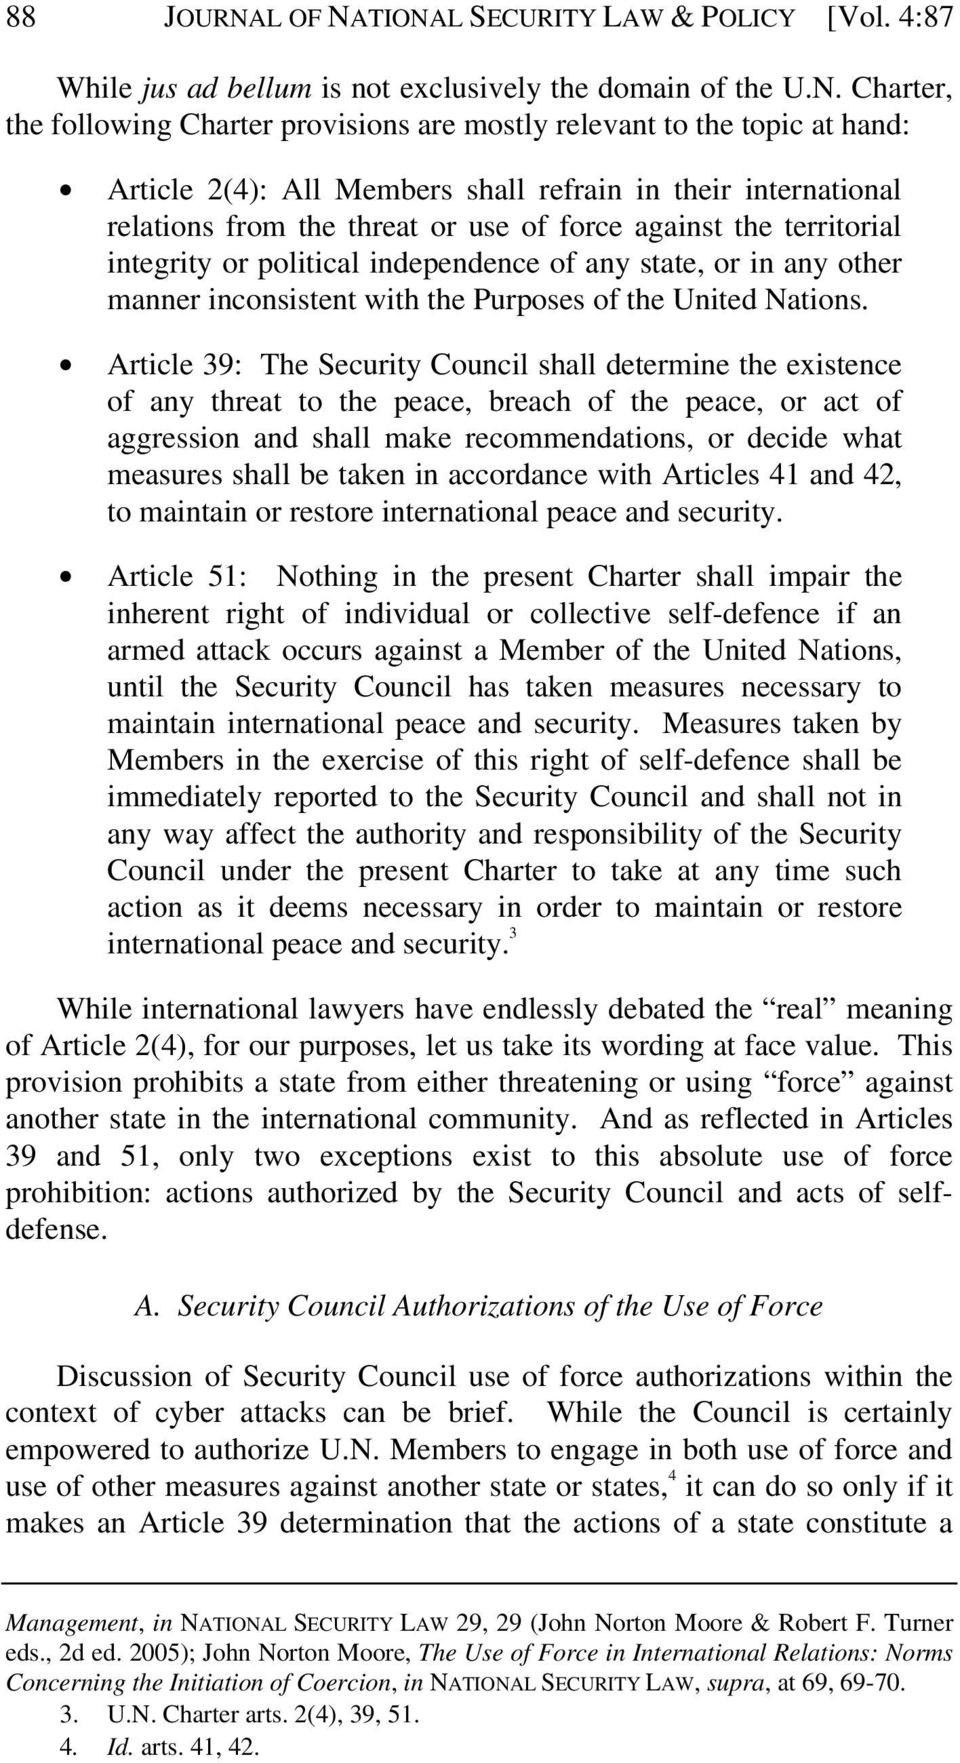 TIONAL SECURITY LAW & POLICY [Vol. 4:87 While jus ad bellum is not exclusively the domain of the U.N. Charter, the following Charter provisions are mostly relevant to the topic at hand: $ Article